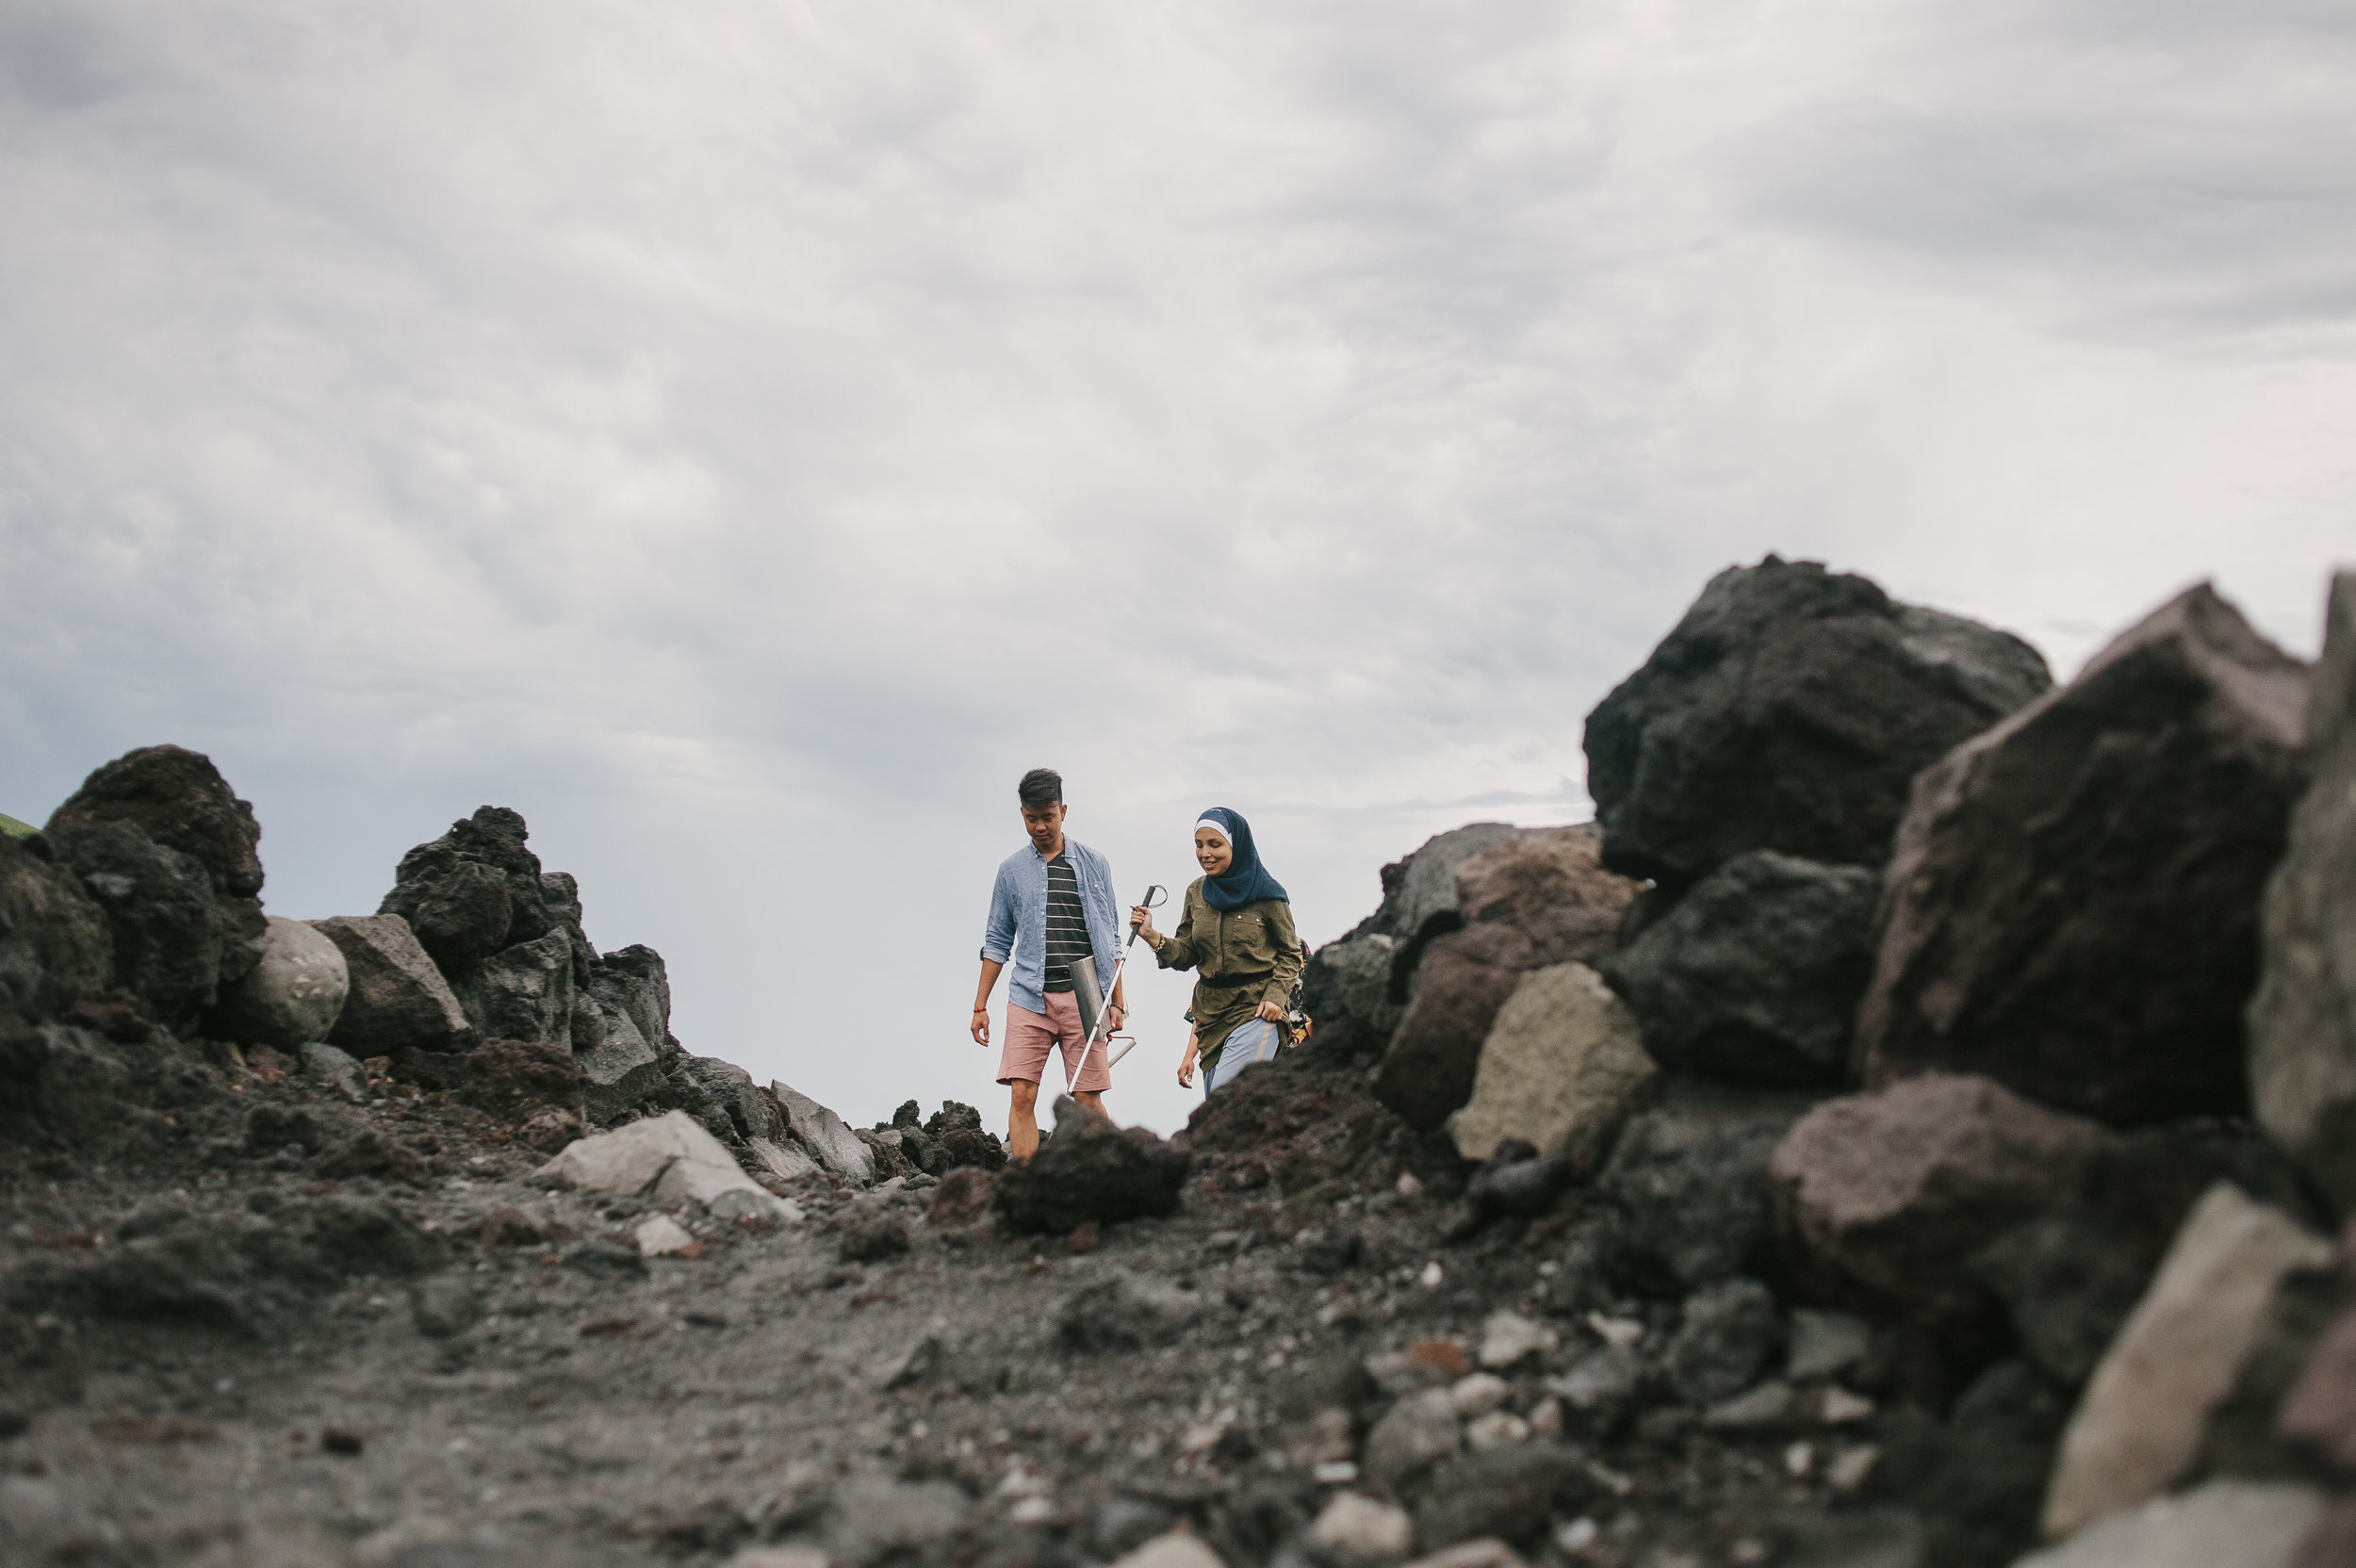 A man and a woman walk on a rocky path. The woman holds a white can and is smiling.